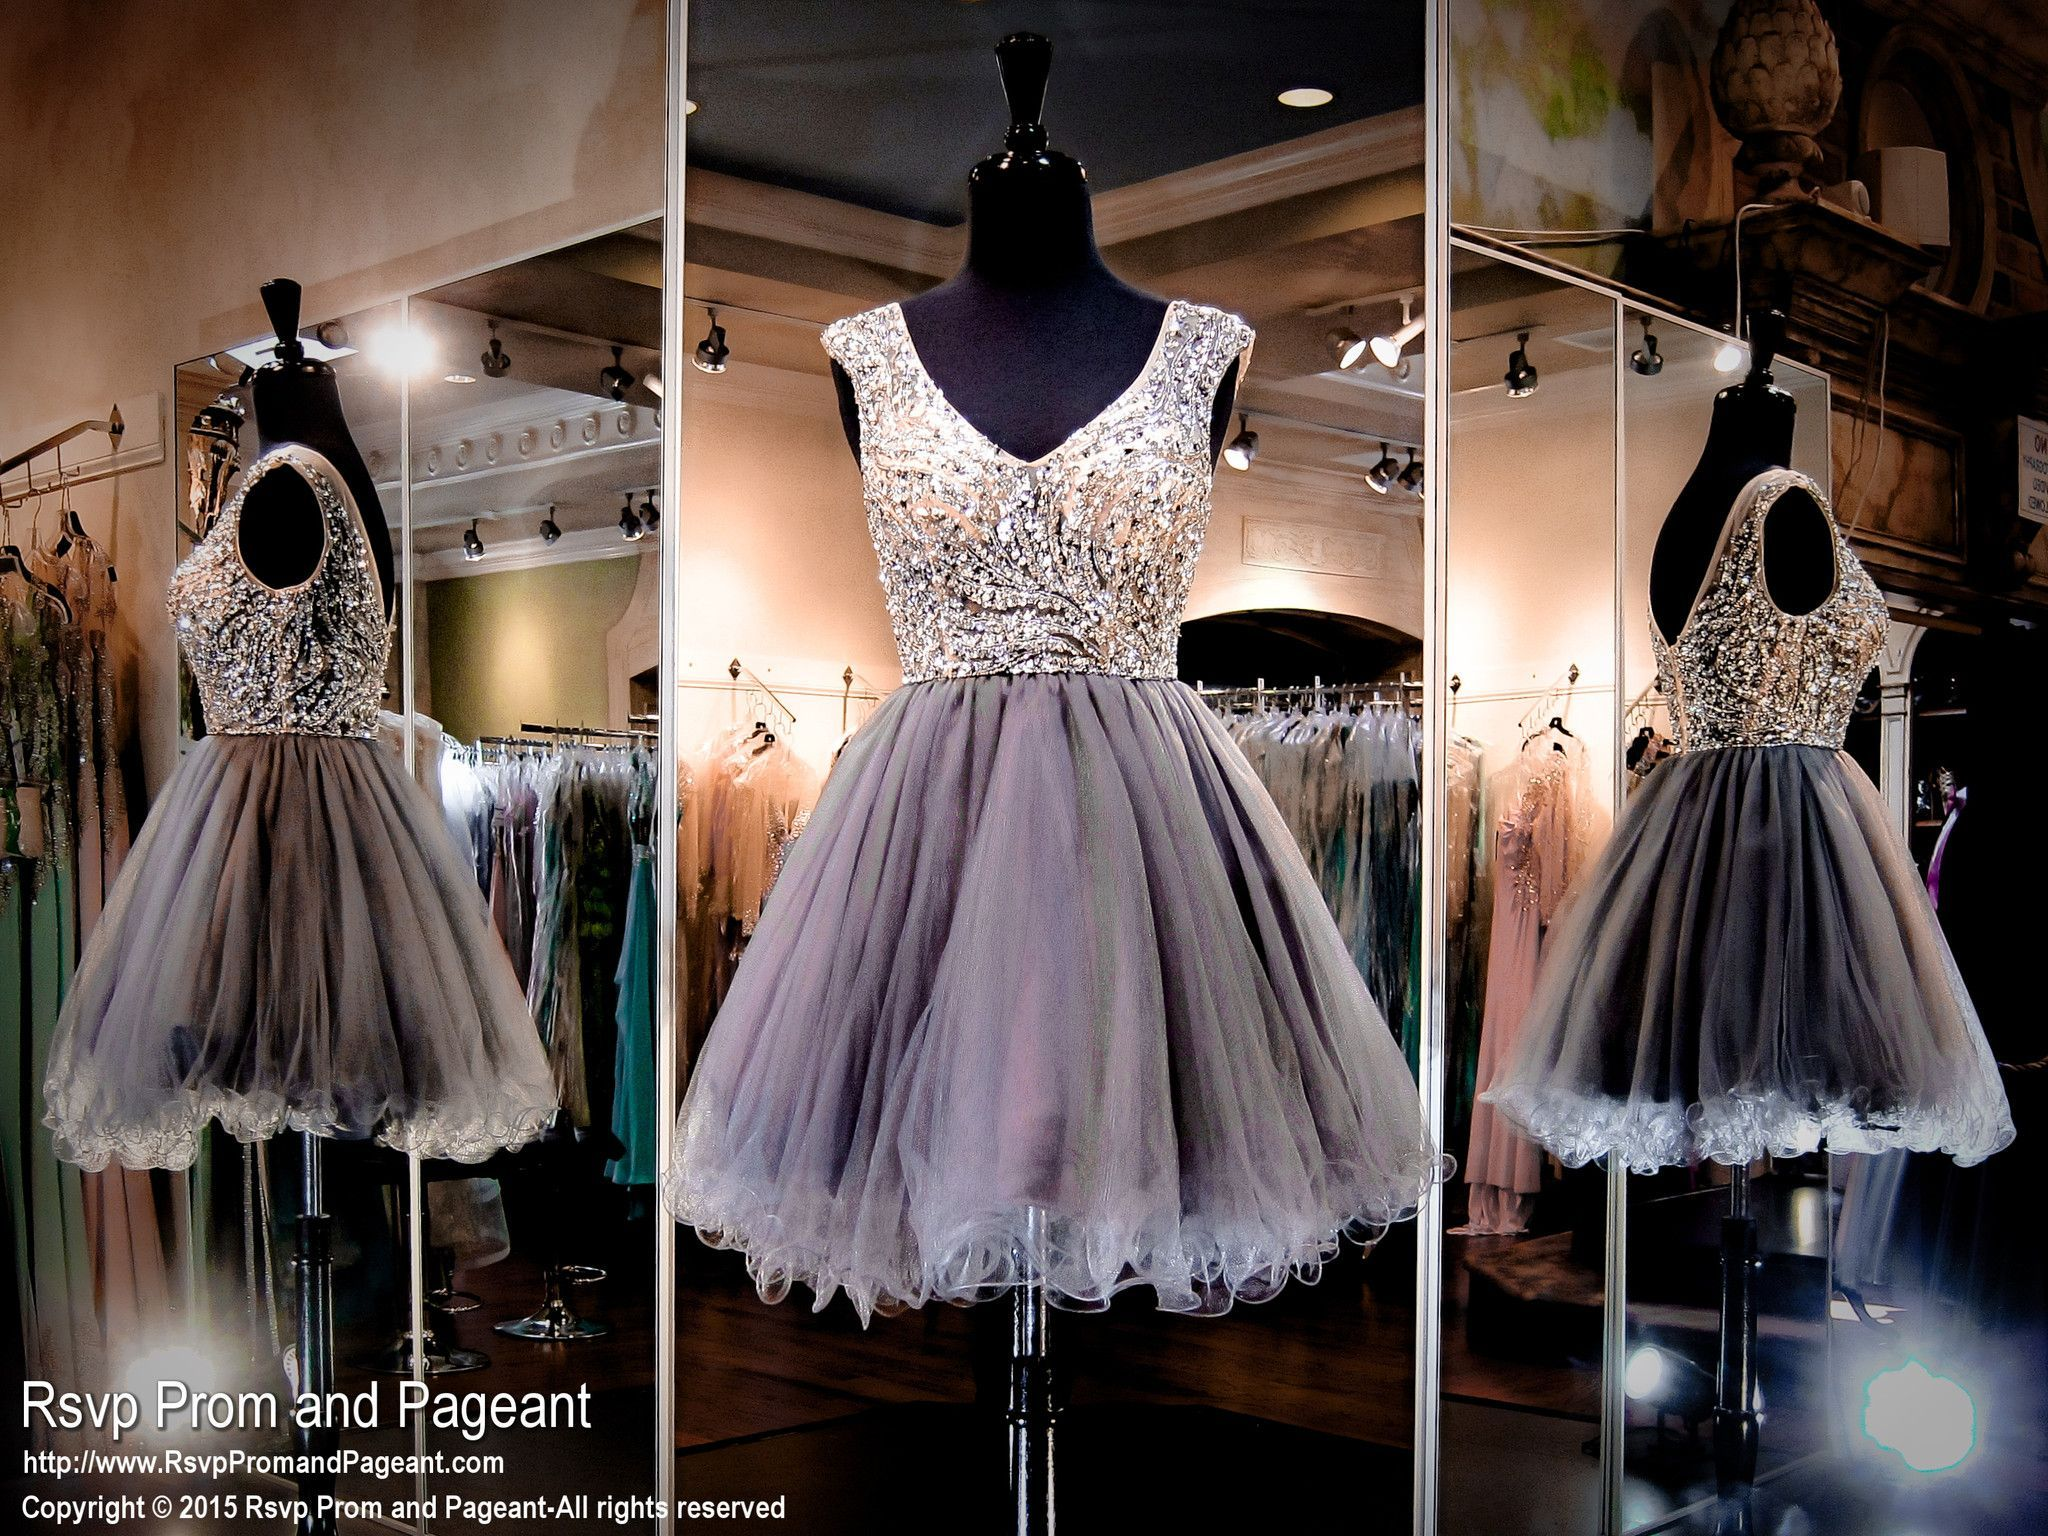 Omg! This stunner is out of this world with a bodice completely covered with sparkling crystals! Perfect for homecoming or sweet sixteen and it's at Rsvp Prom and Pageant, your Atlanta Prom Store!